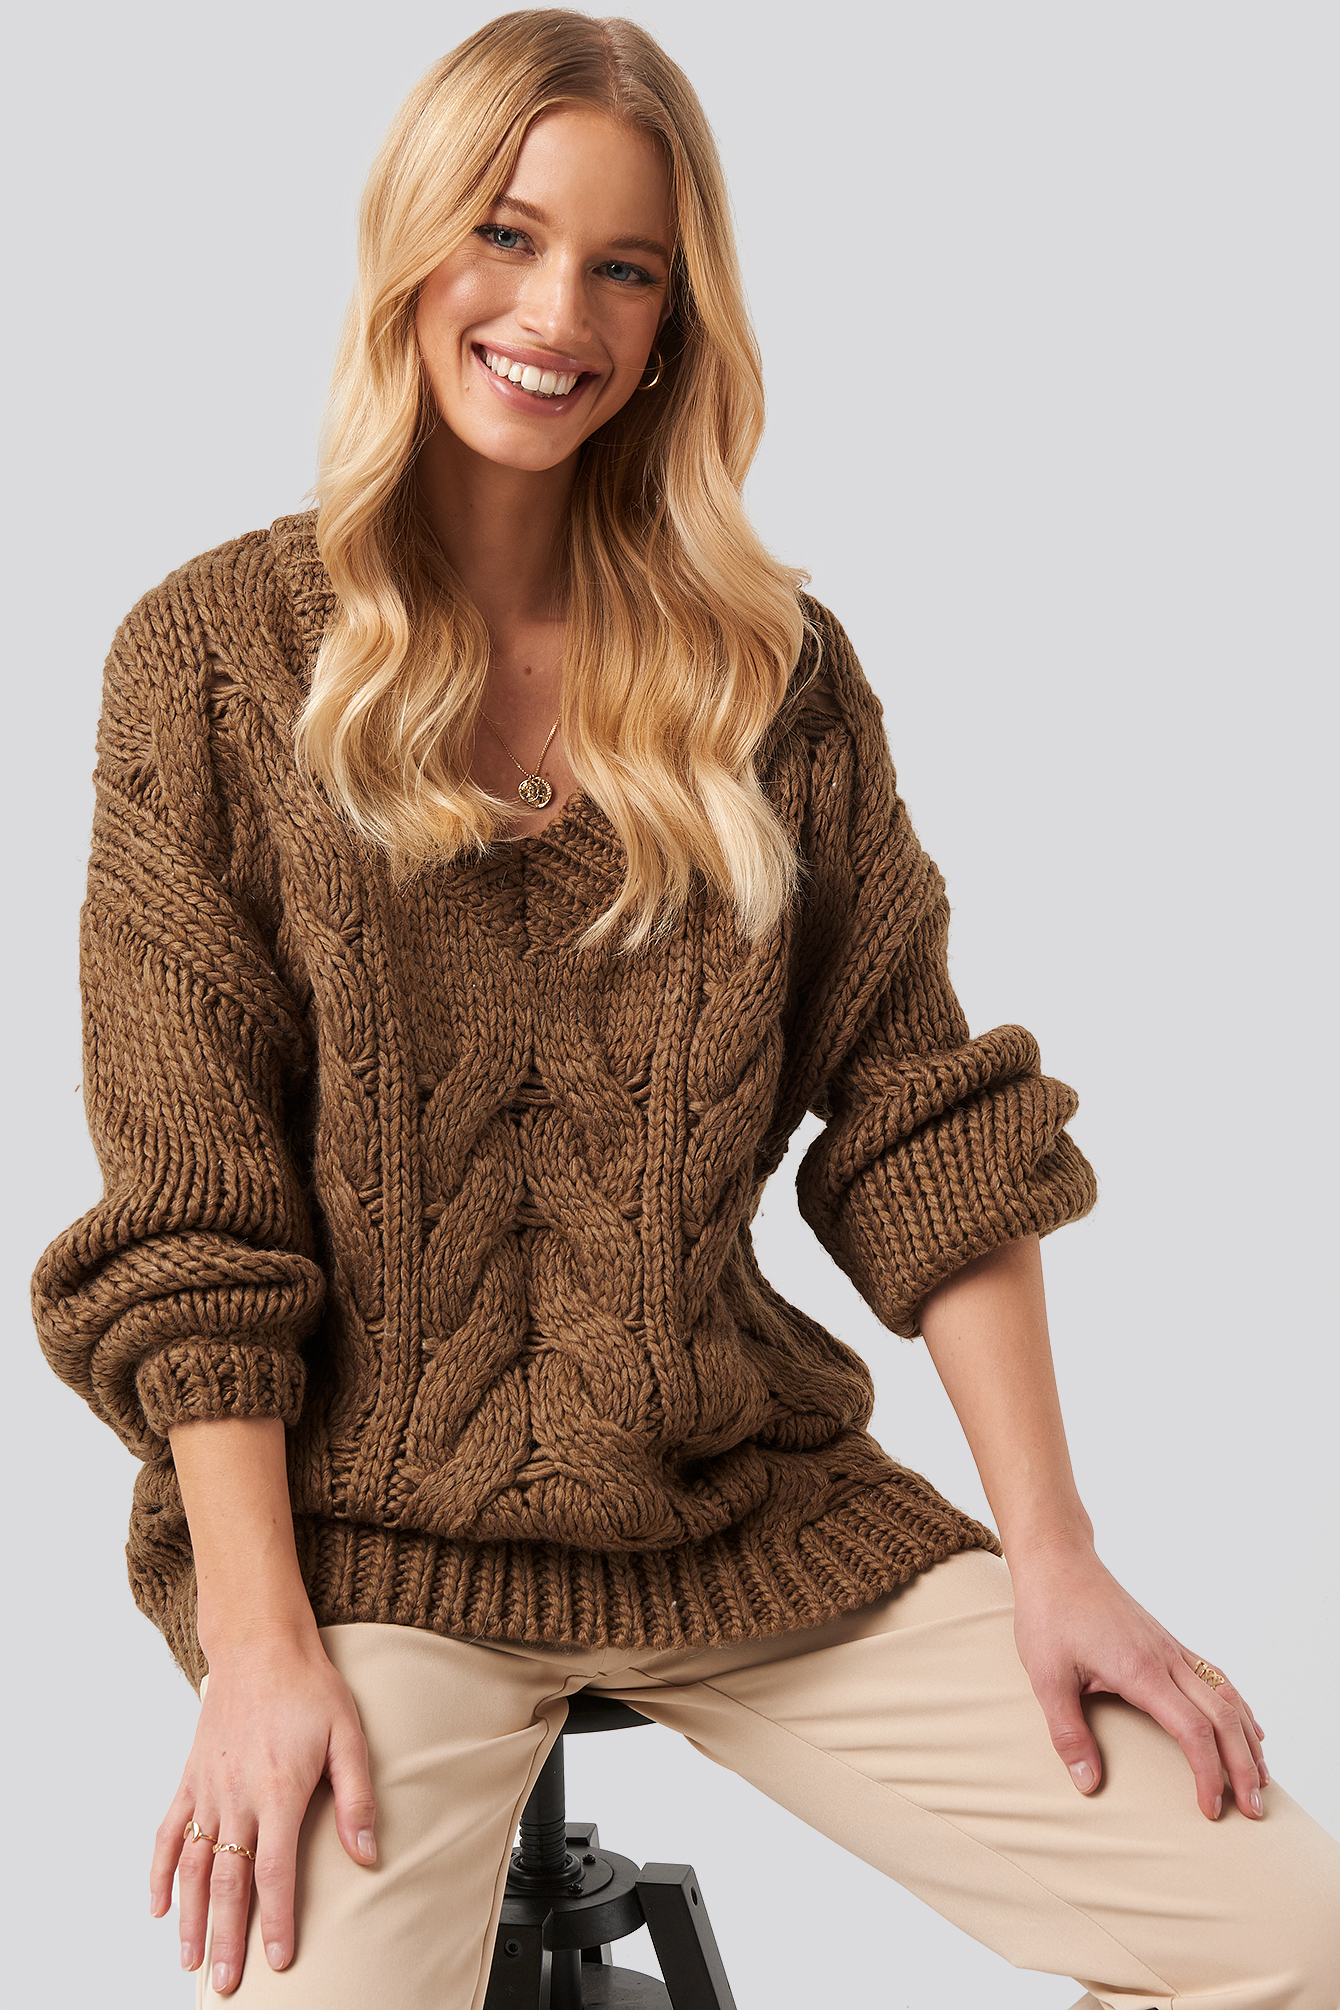 NA-KD Trend Wool Blend V-Neck Heavy Knitted Cable Sweater - Brown | Bekleidung > Sweatshirts & -jacken > Sweatshirts | NA-KD Trend